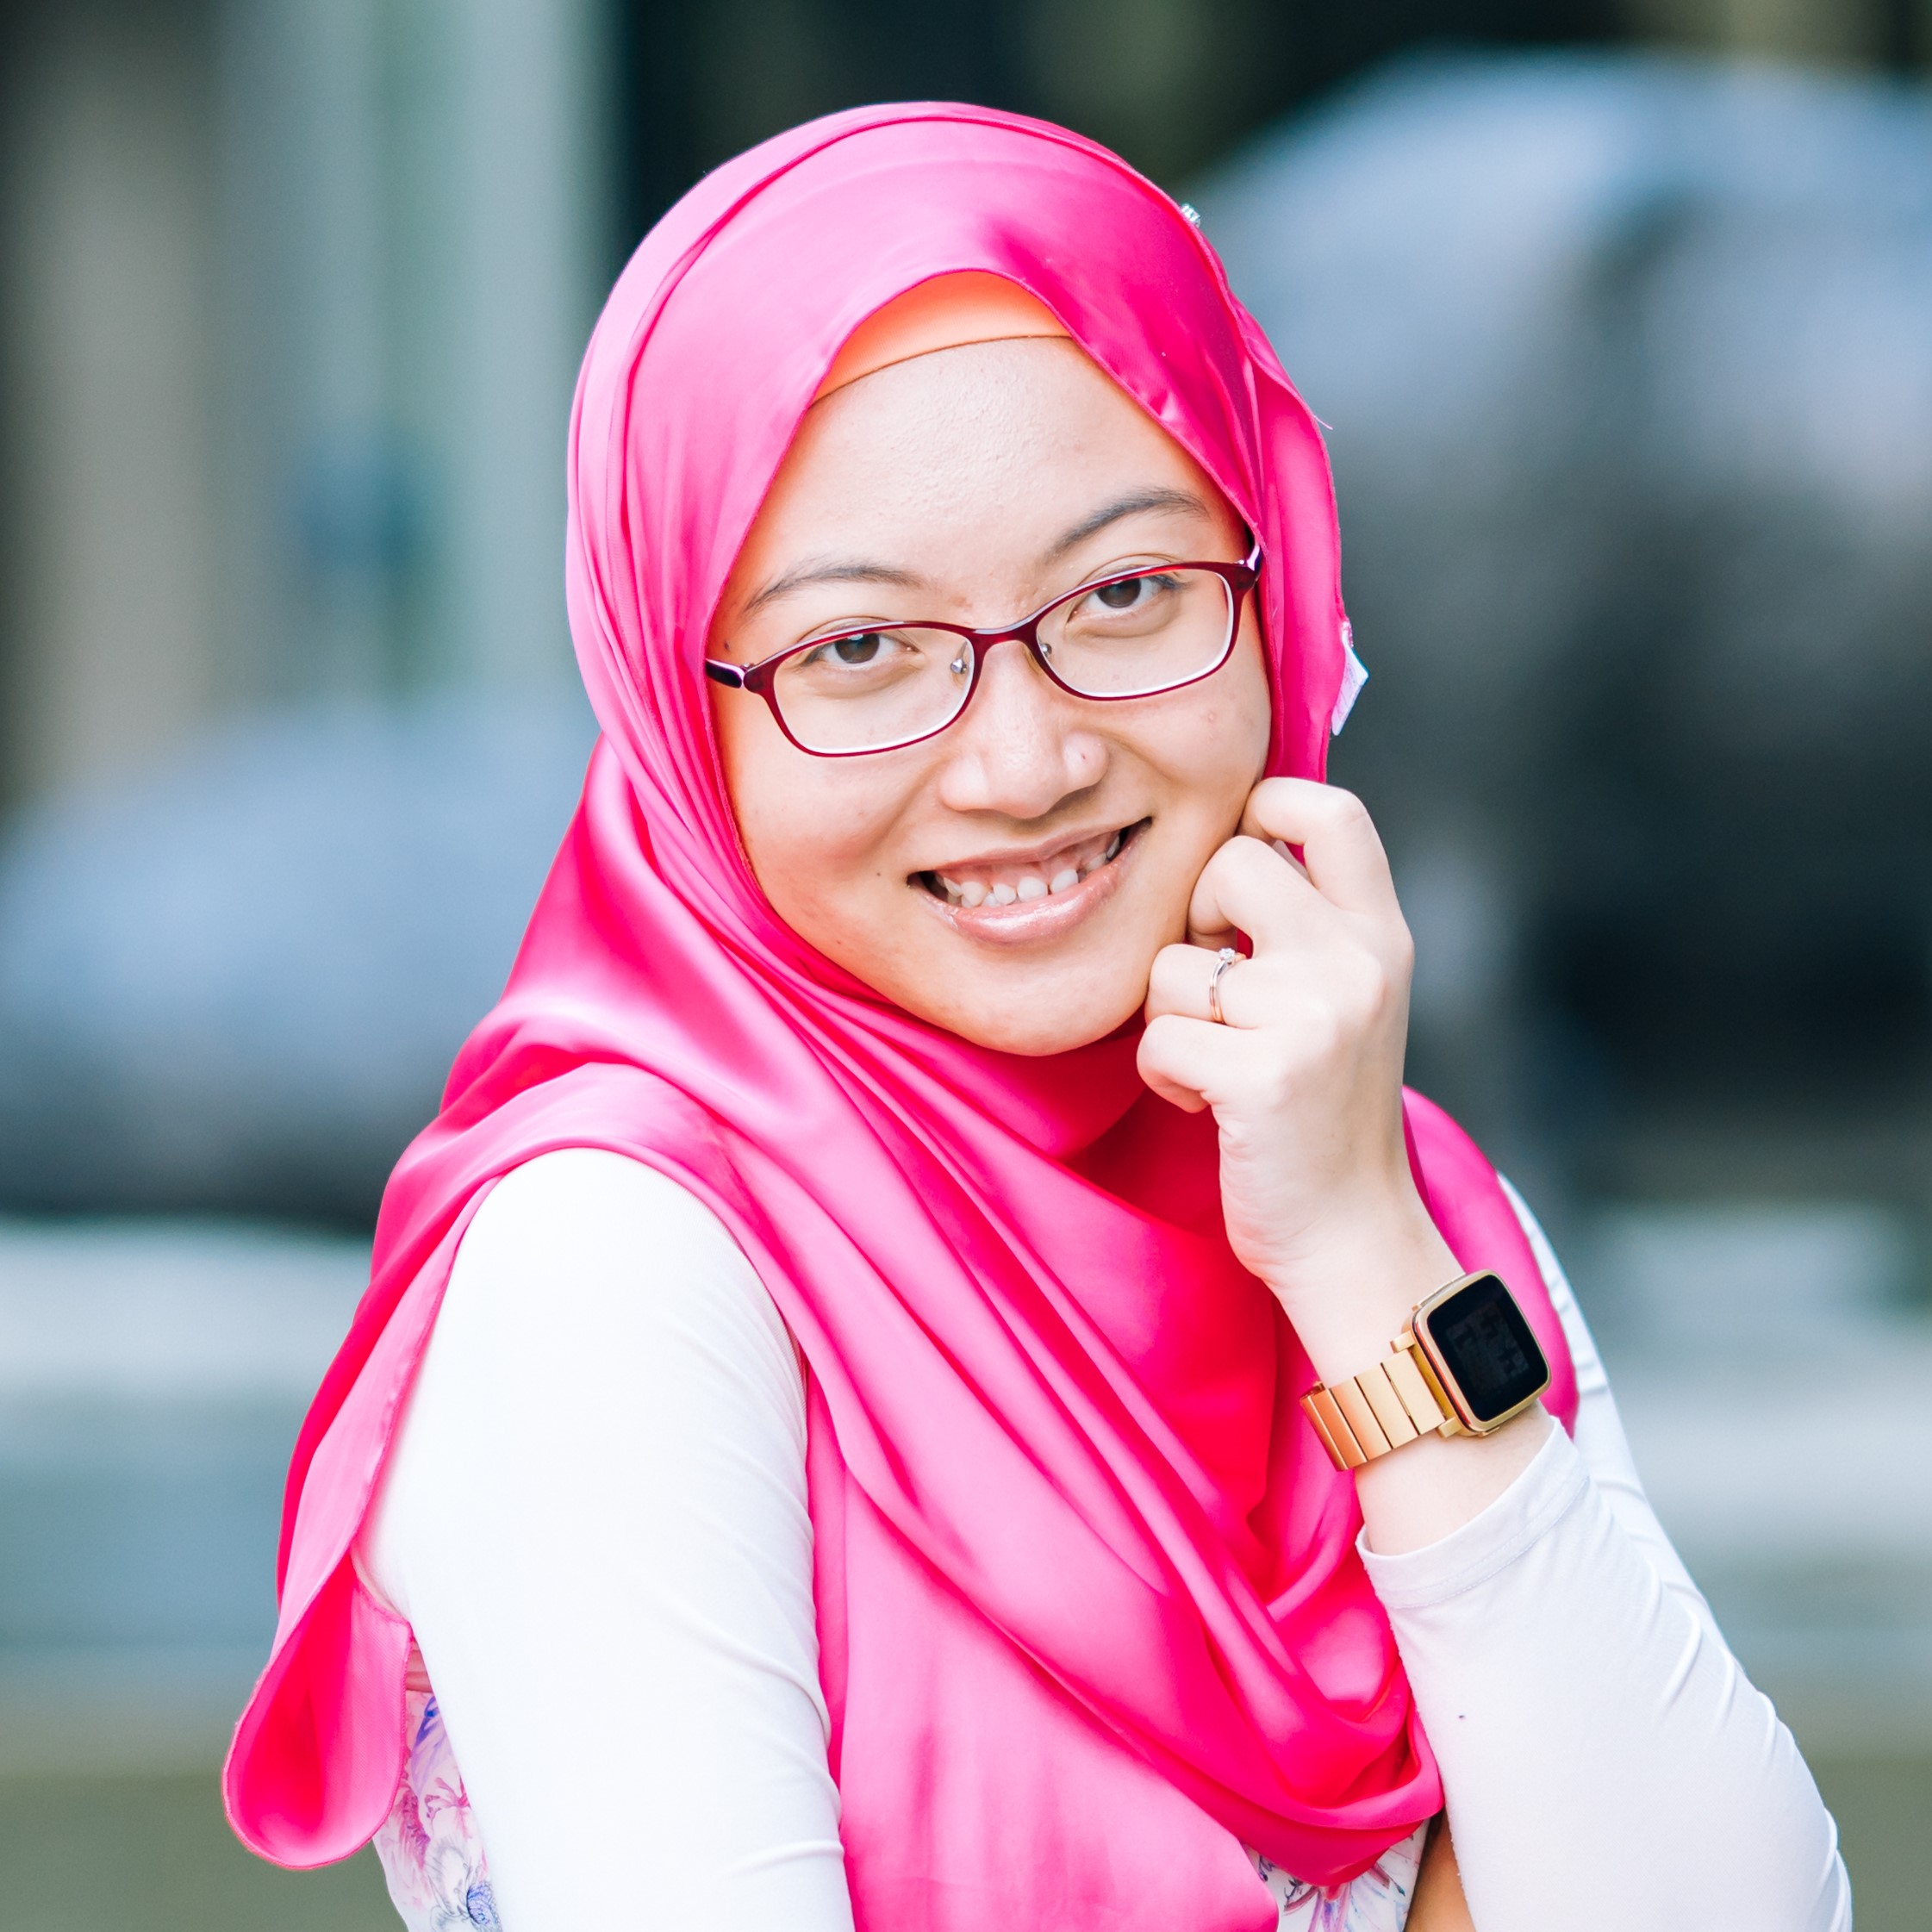 Meet Your Host - Hi, I'm Huda!I'm the host of Fempreneur Secrets Podcast. I'm also a Brand Strategist, Coach & Trainer based in Singapore.I work with women entrepreneurs (fempreneurs as I like to call them) to reveal secrets of launching & scaling a business, so that you will be encouraged to continue on a more REAL Fempreneurship journey.